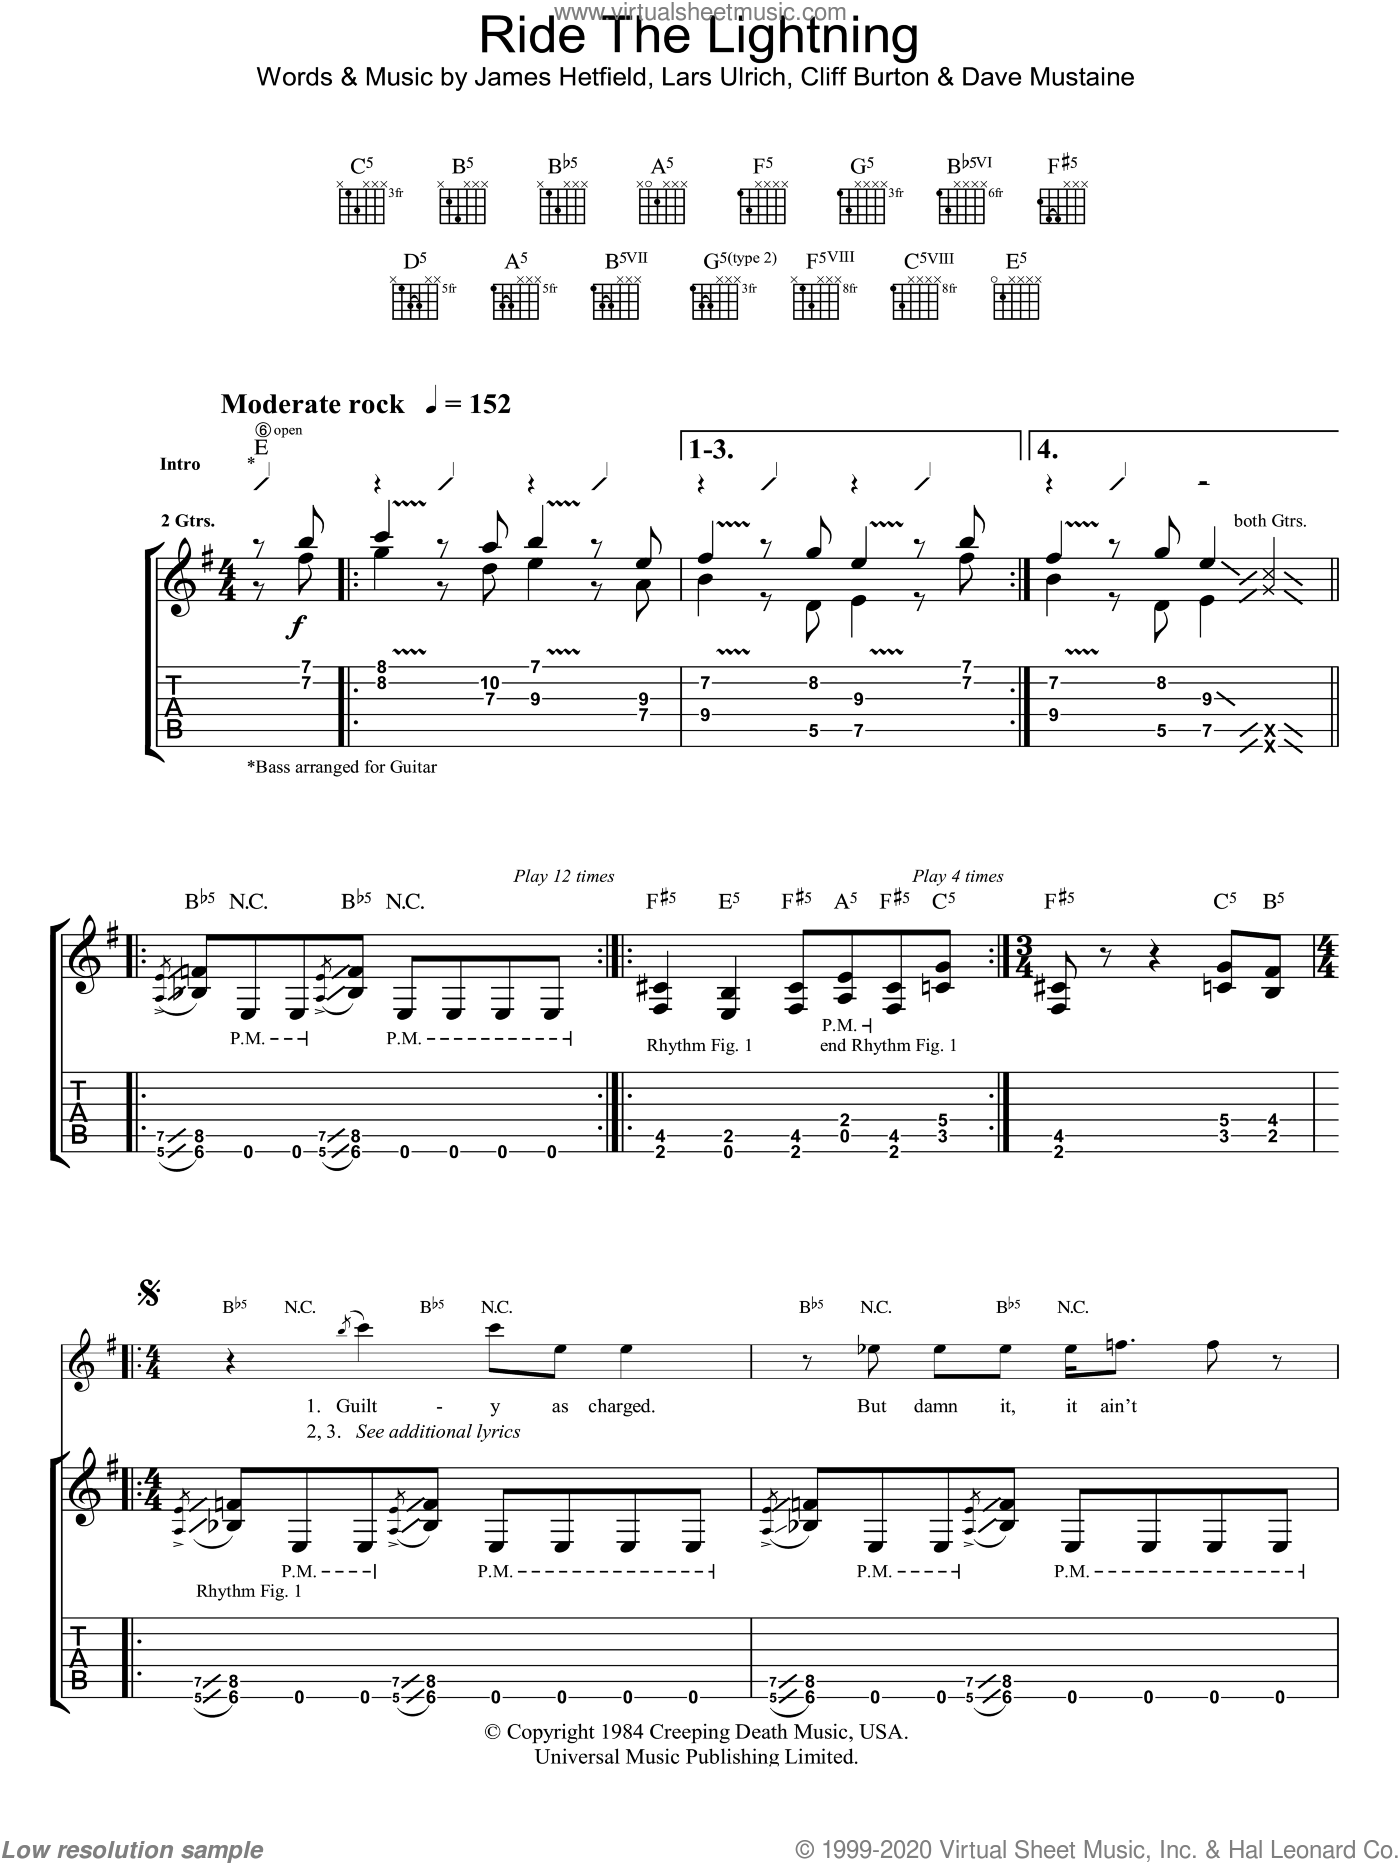 Ride The Lightning sheet music for guitar (tablature) by Metallica, Cliff Burton, Dave Mustaine, James Hetfield and Lars Ulrich, intermediate. Score Image Preview.